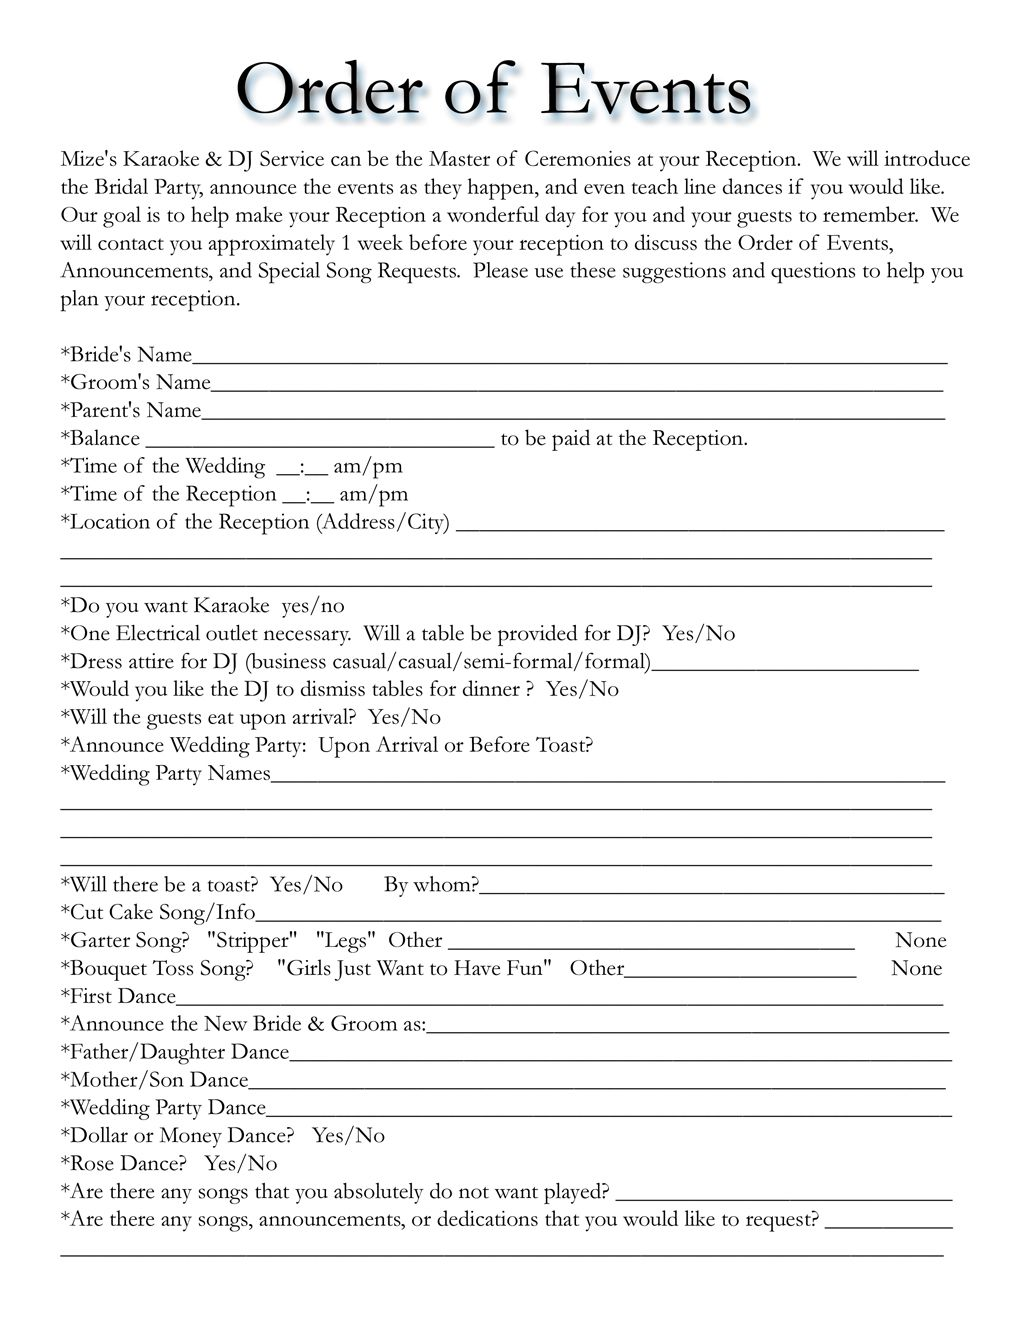 Wedding Itinerary Templates Free Wedding Template Projects To - Day of wedding timeline template free